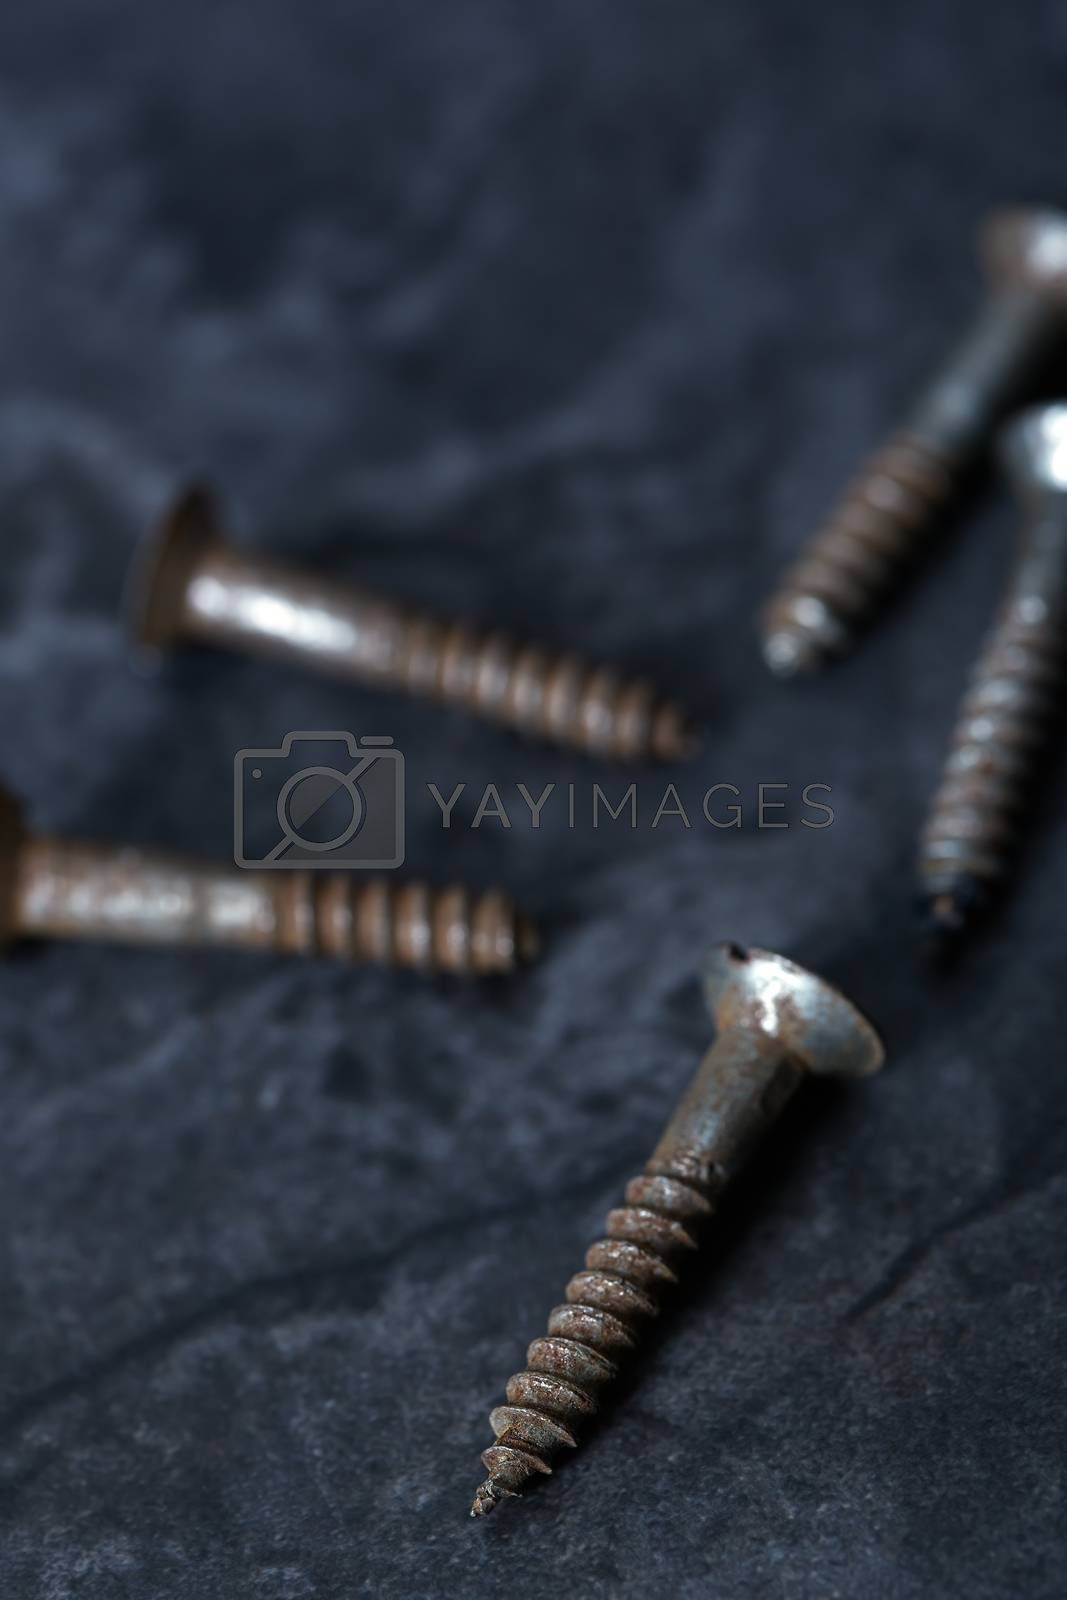 Group of rusty screws. Close-up vertical photo